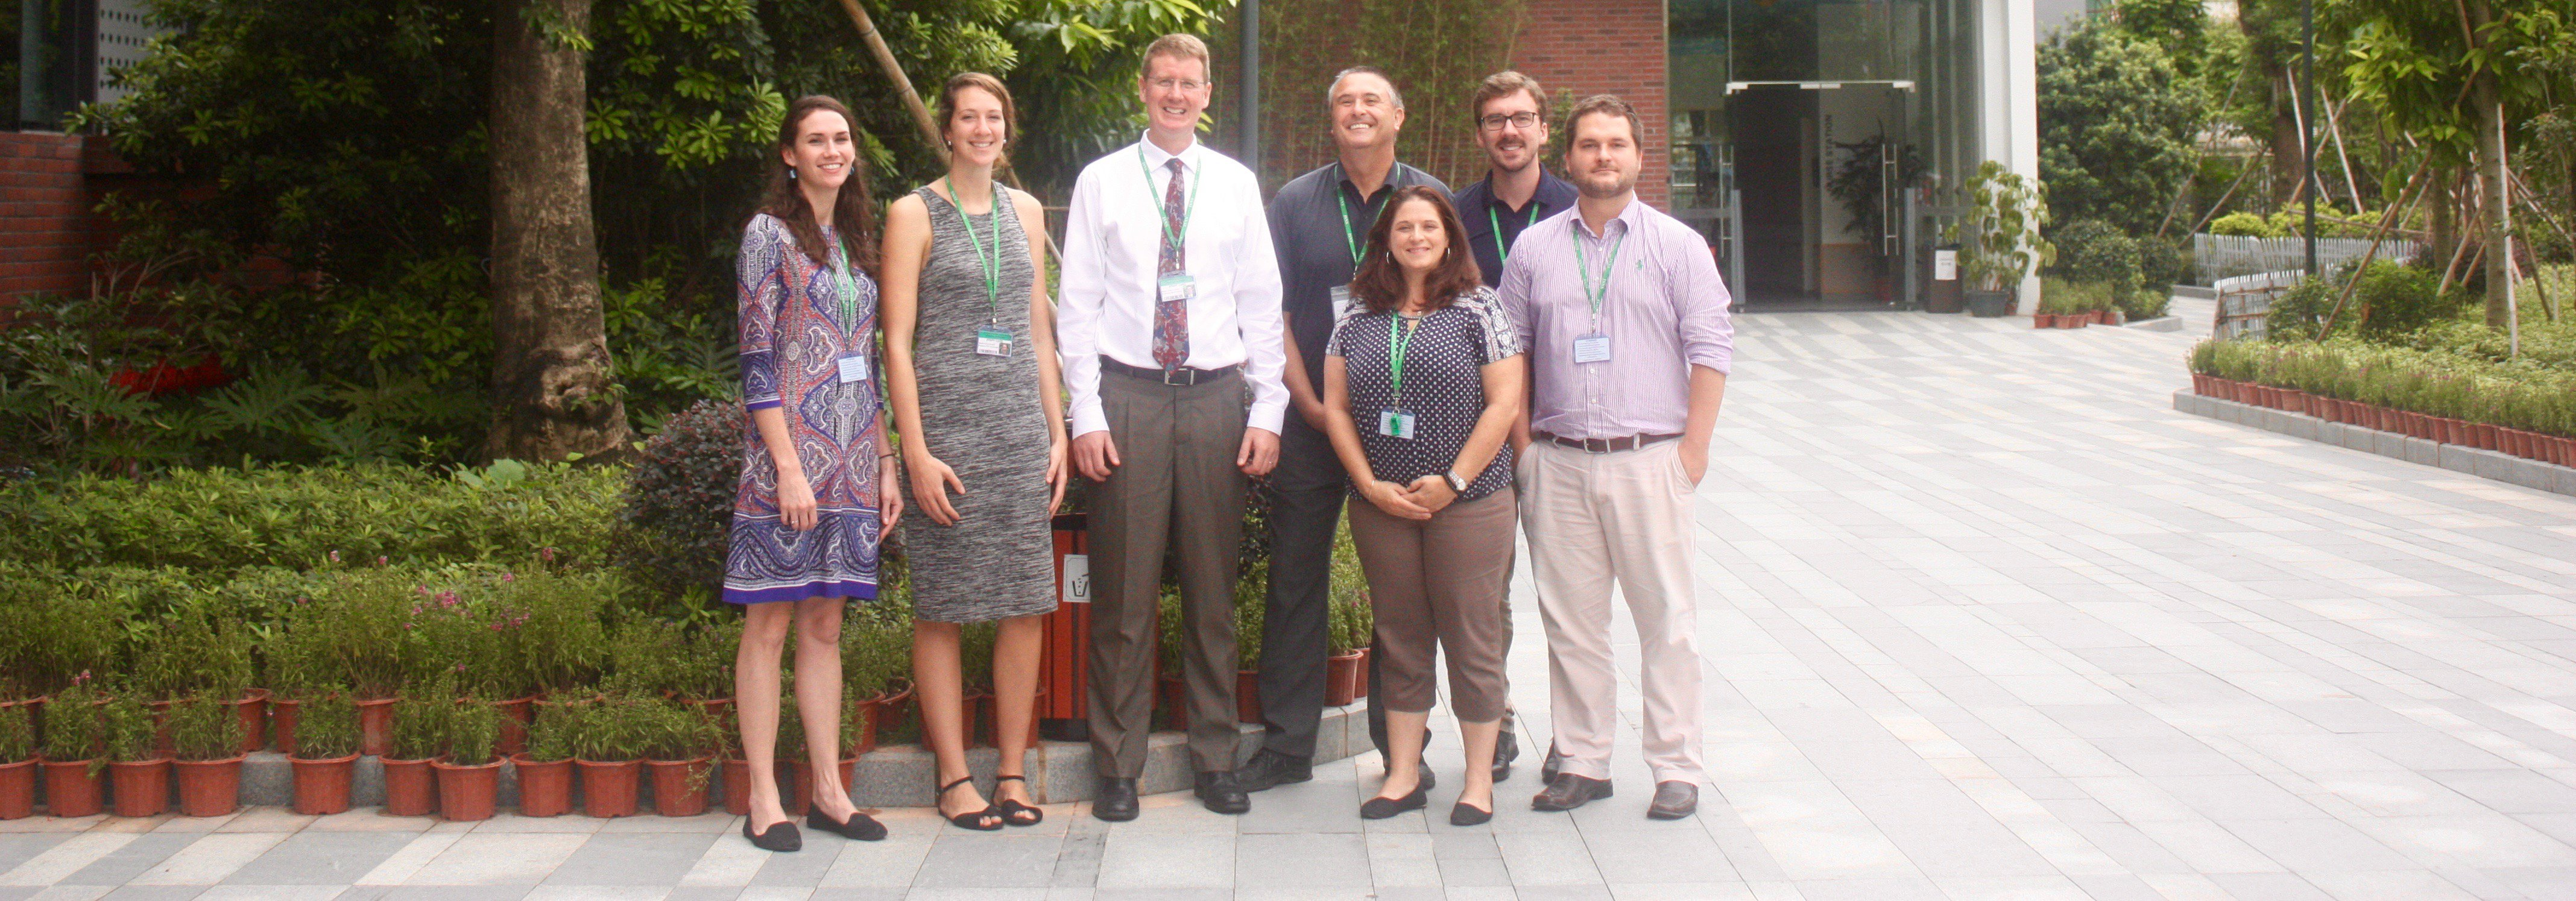 Left: Gina Awalt (Primary School Principal), Emma Stafford (PYP Coordinator), David Swason (Head of School), Nicholas Bears (EY Coordinator), Addie Loy (IB Director), Alex Ritchie (DP Coordinator), Patrick Boekhoud (Middle & High School Principal); Not pictured: Katherine Crossman (MYP Coordinator)